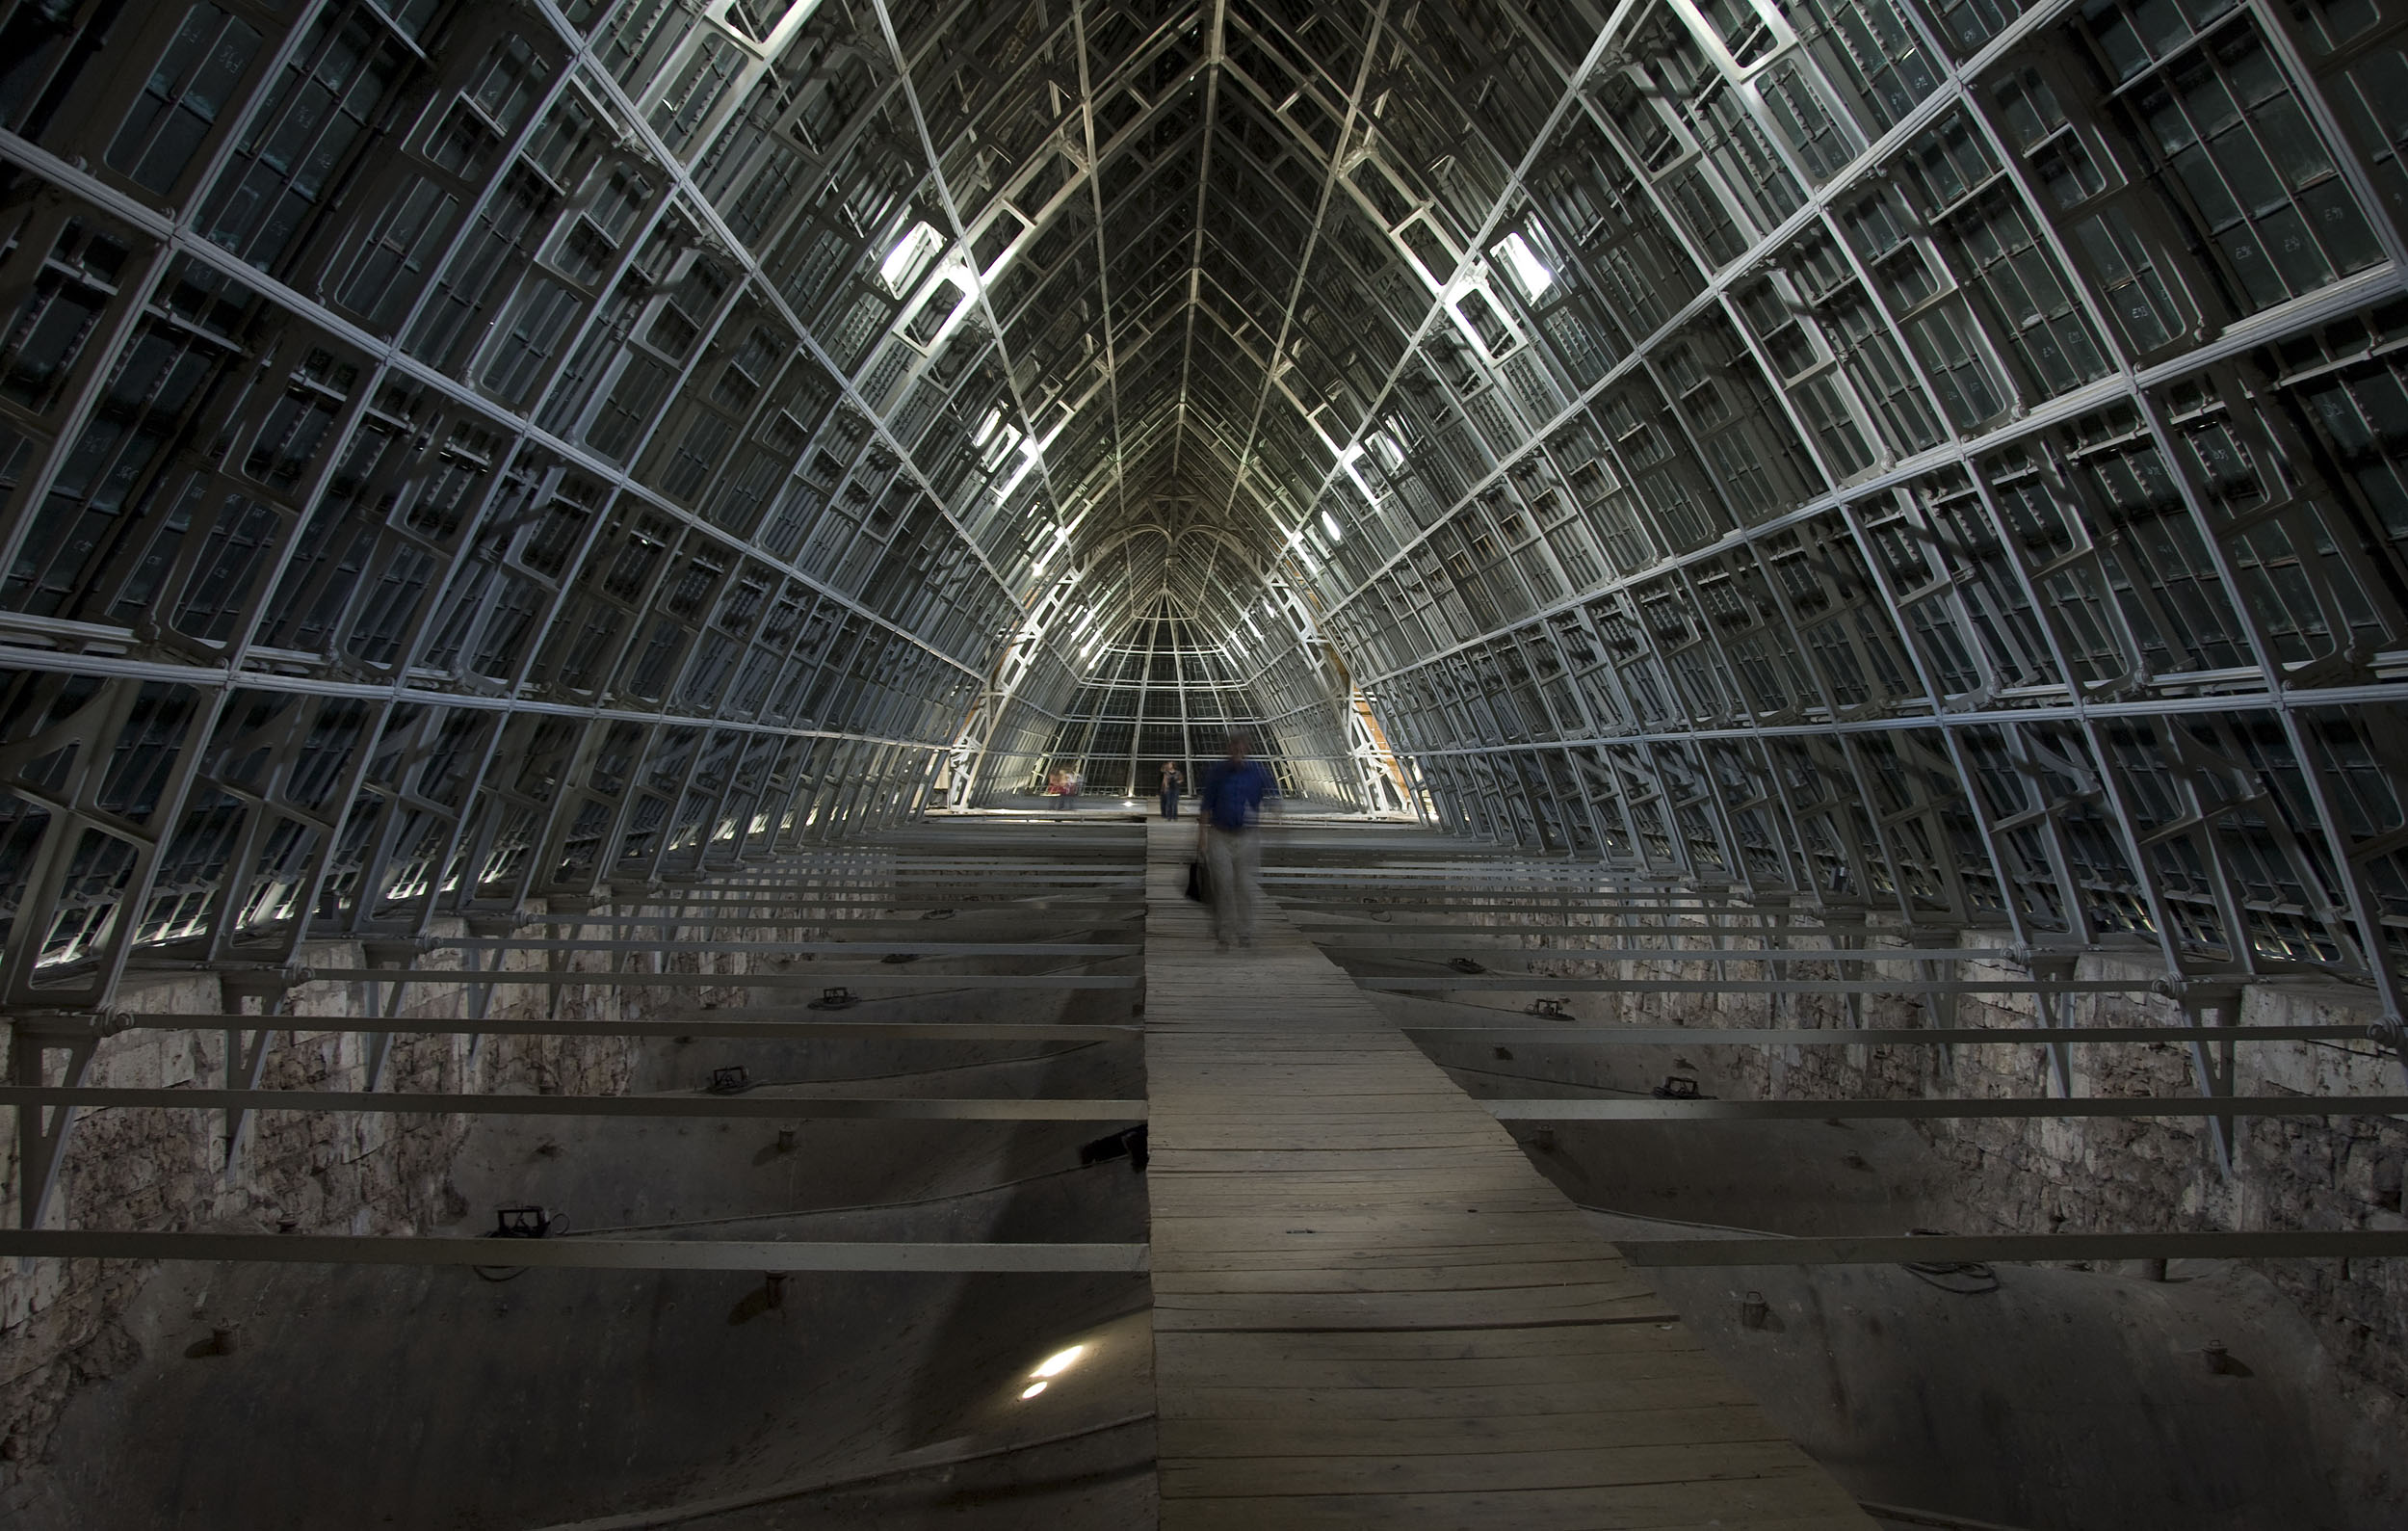 http://upload.wikimedia.org/wikipedia/commons/e/e3/Chartres_roof_space_the_Charpente_de_Fer.jpg